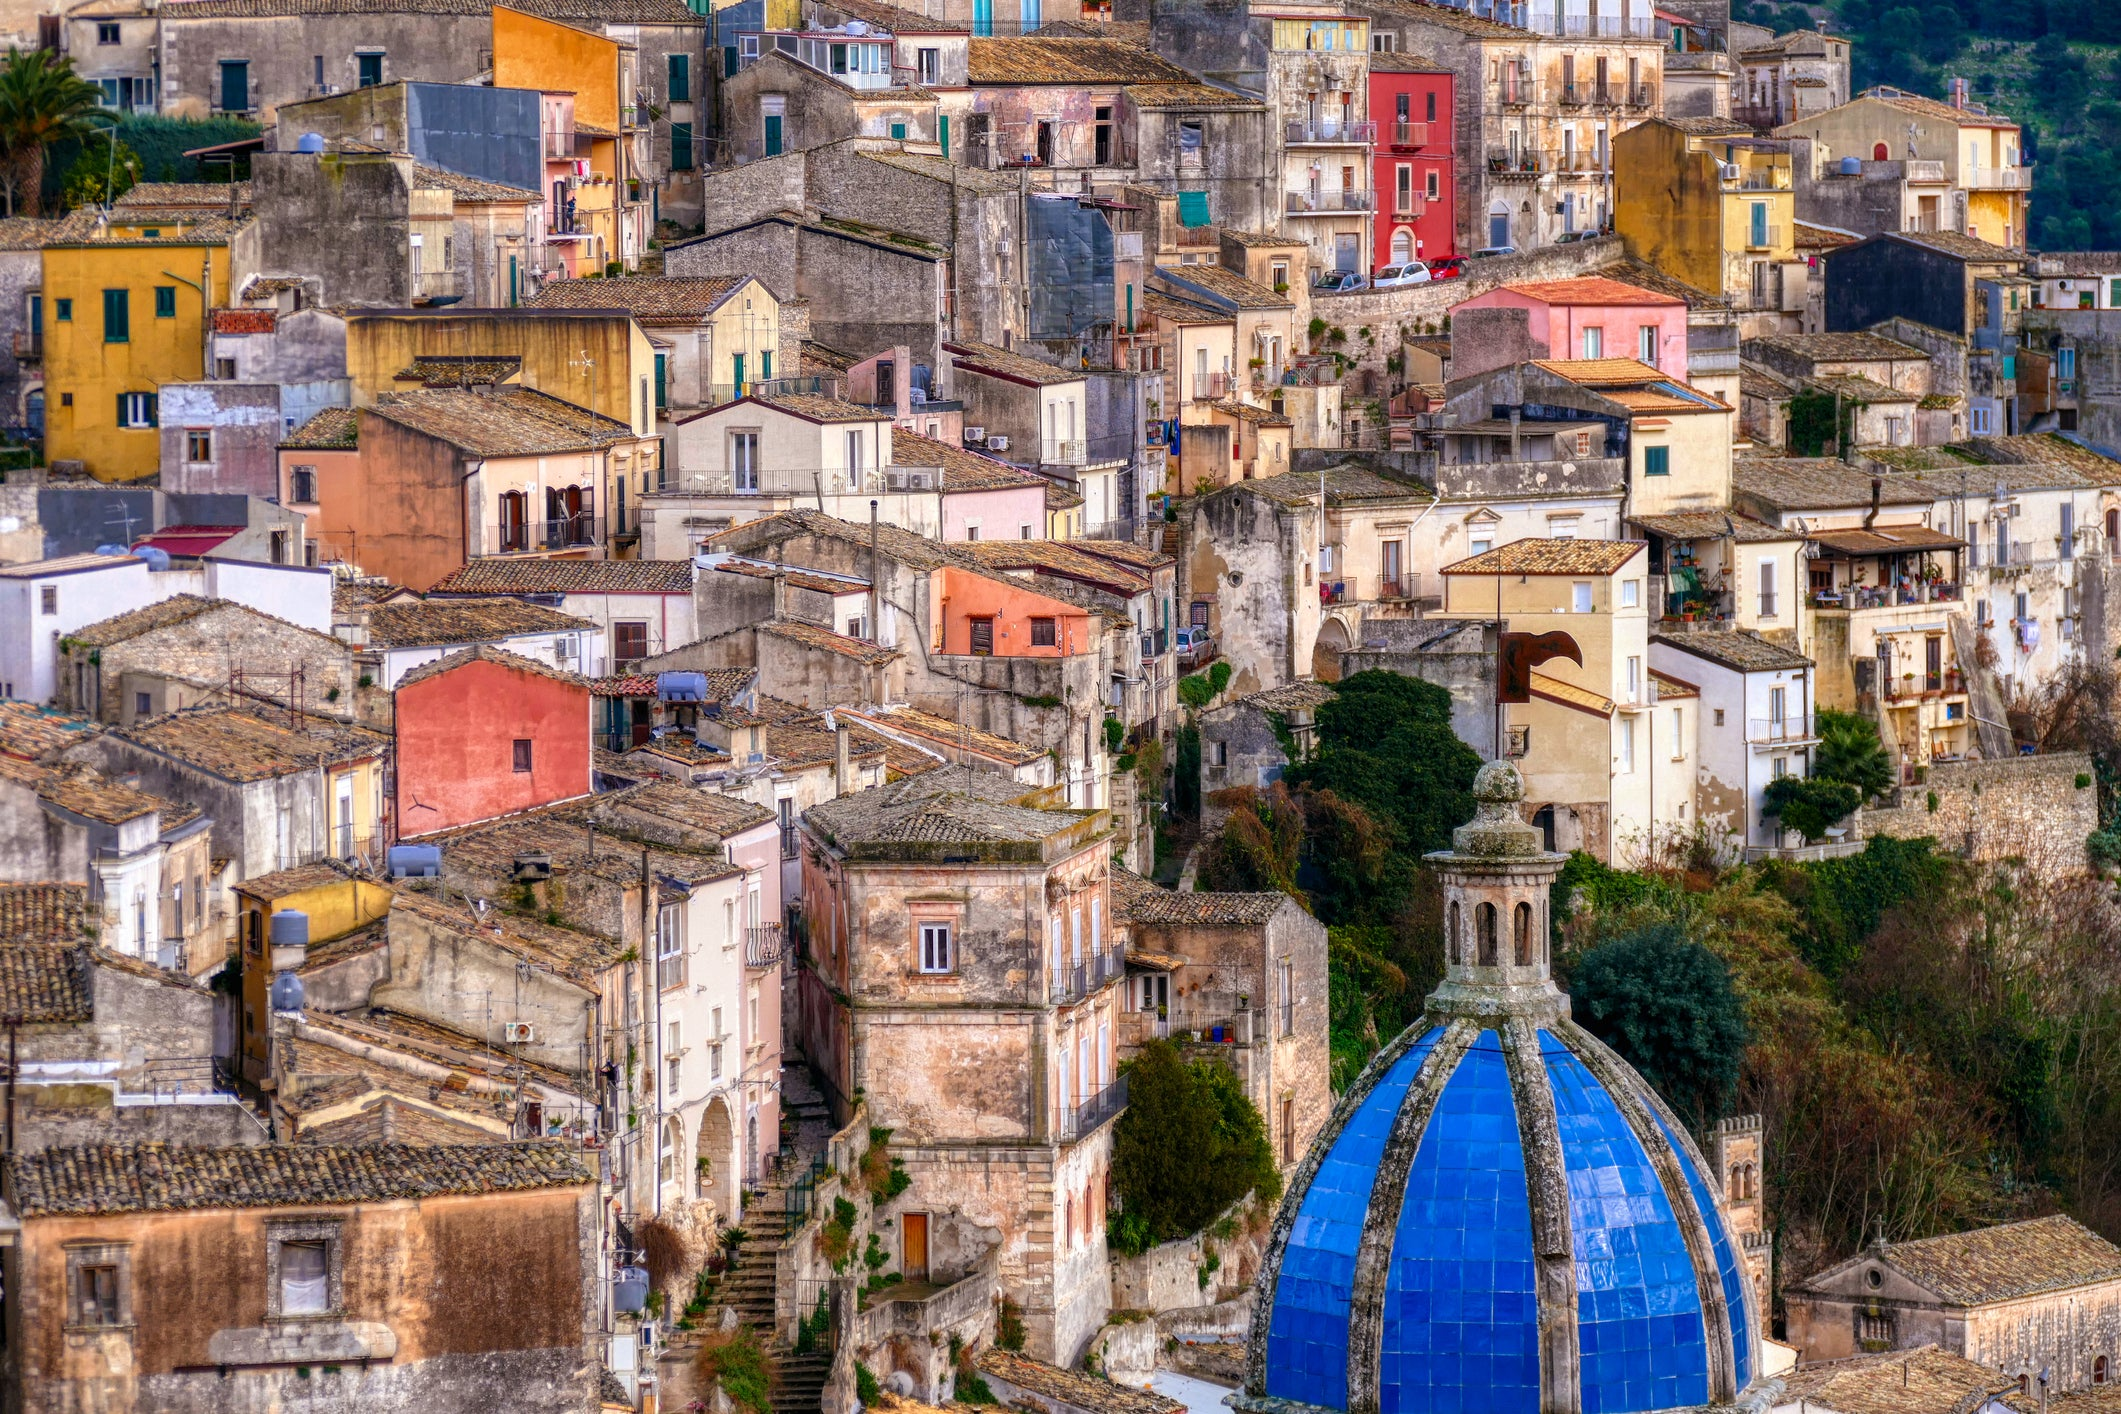 13 of the most beautiful villages and towns in Sicily - The Points Guy UK